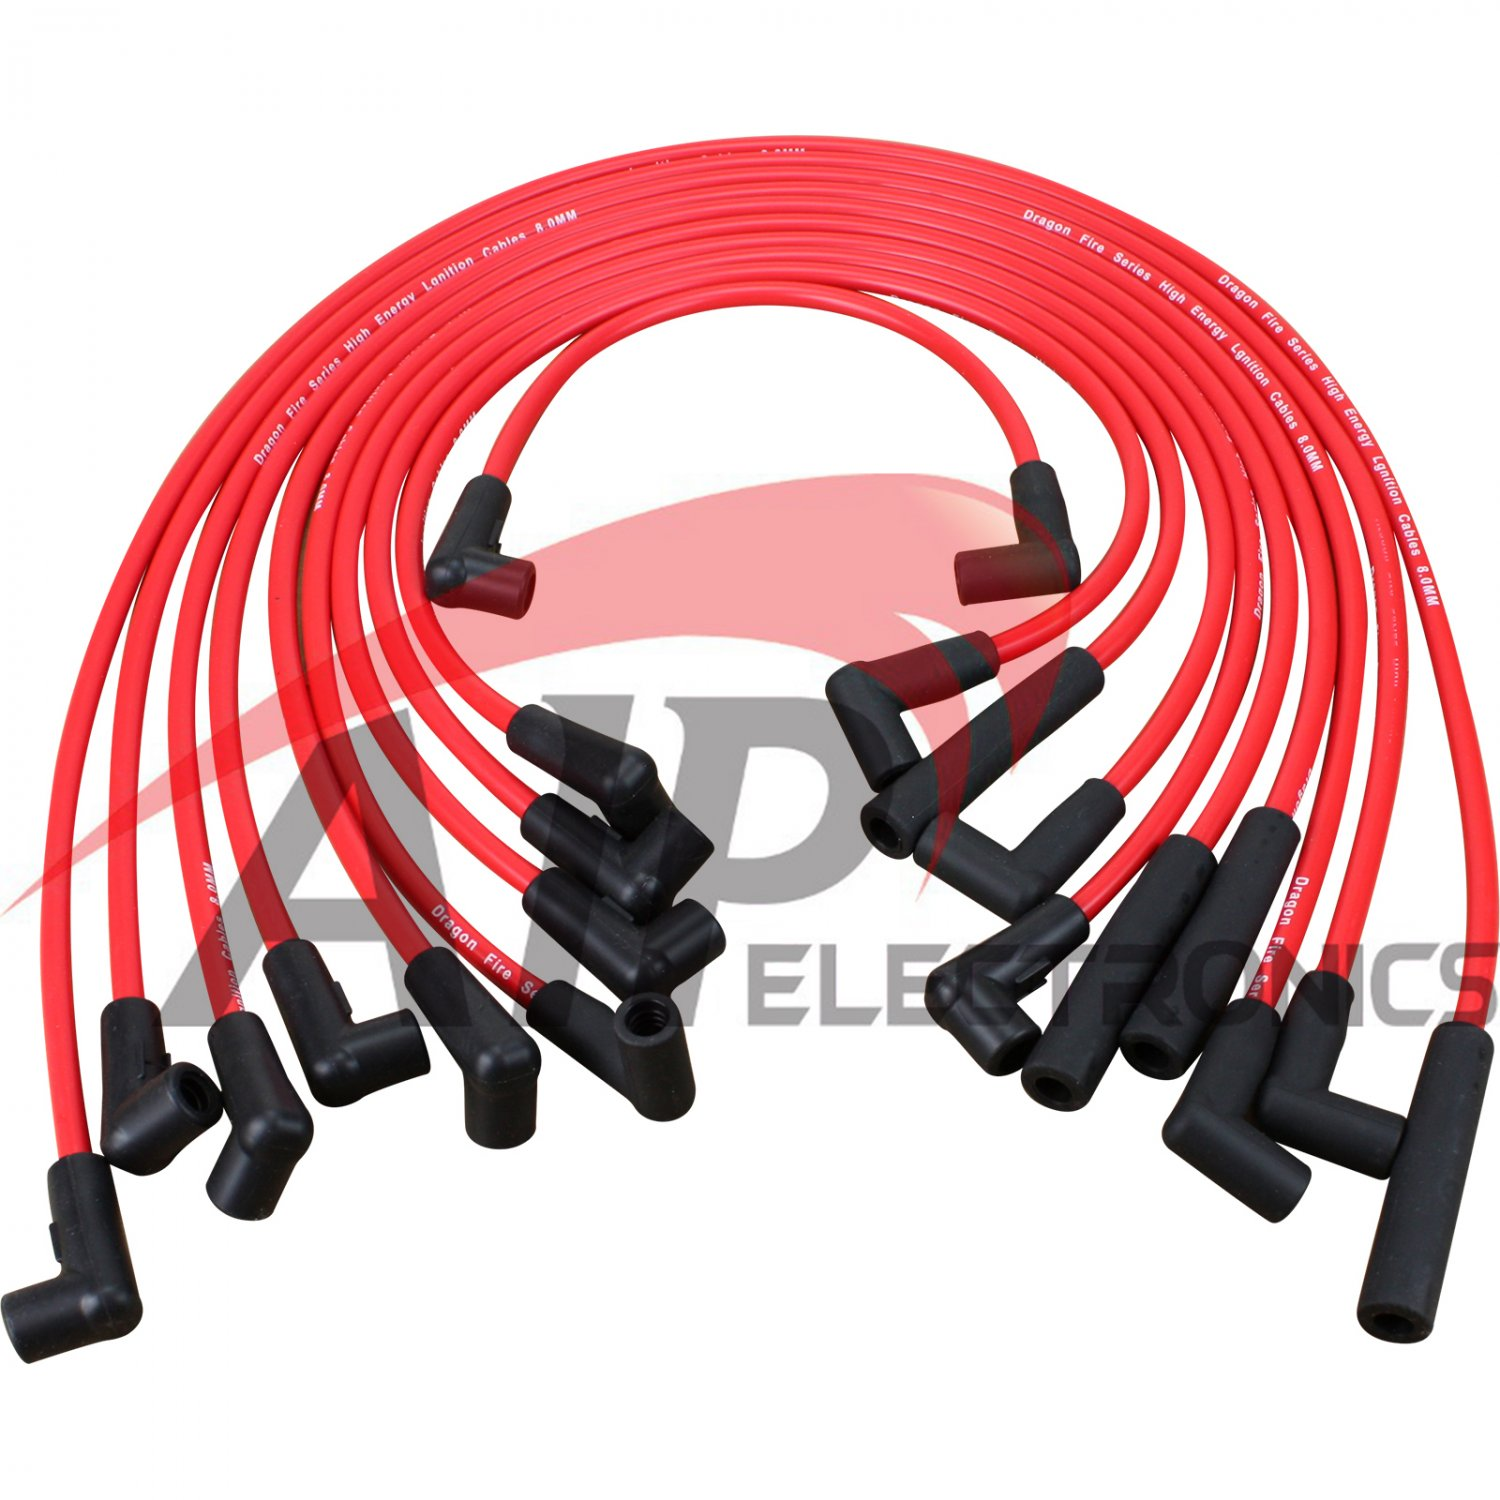 Brand Dragon Fire Performance Hei Spark Plug Wire Set For 1987-1995 Chevrolet 305 350 Cadillac Buick